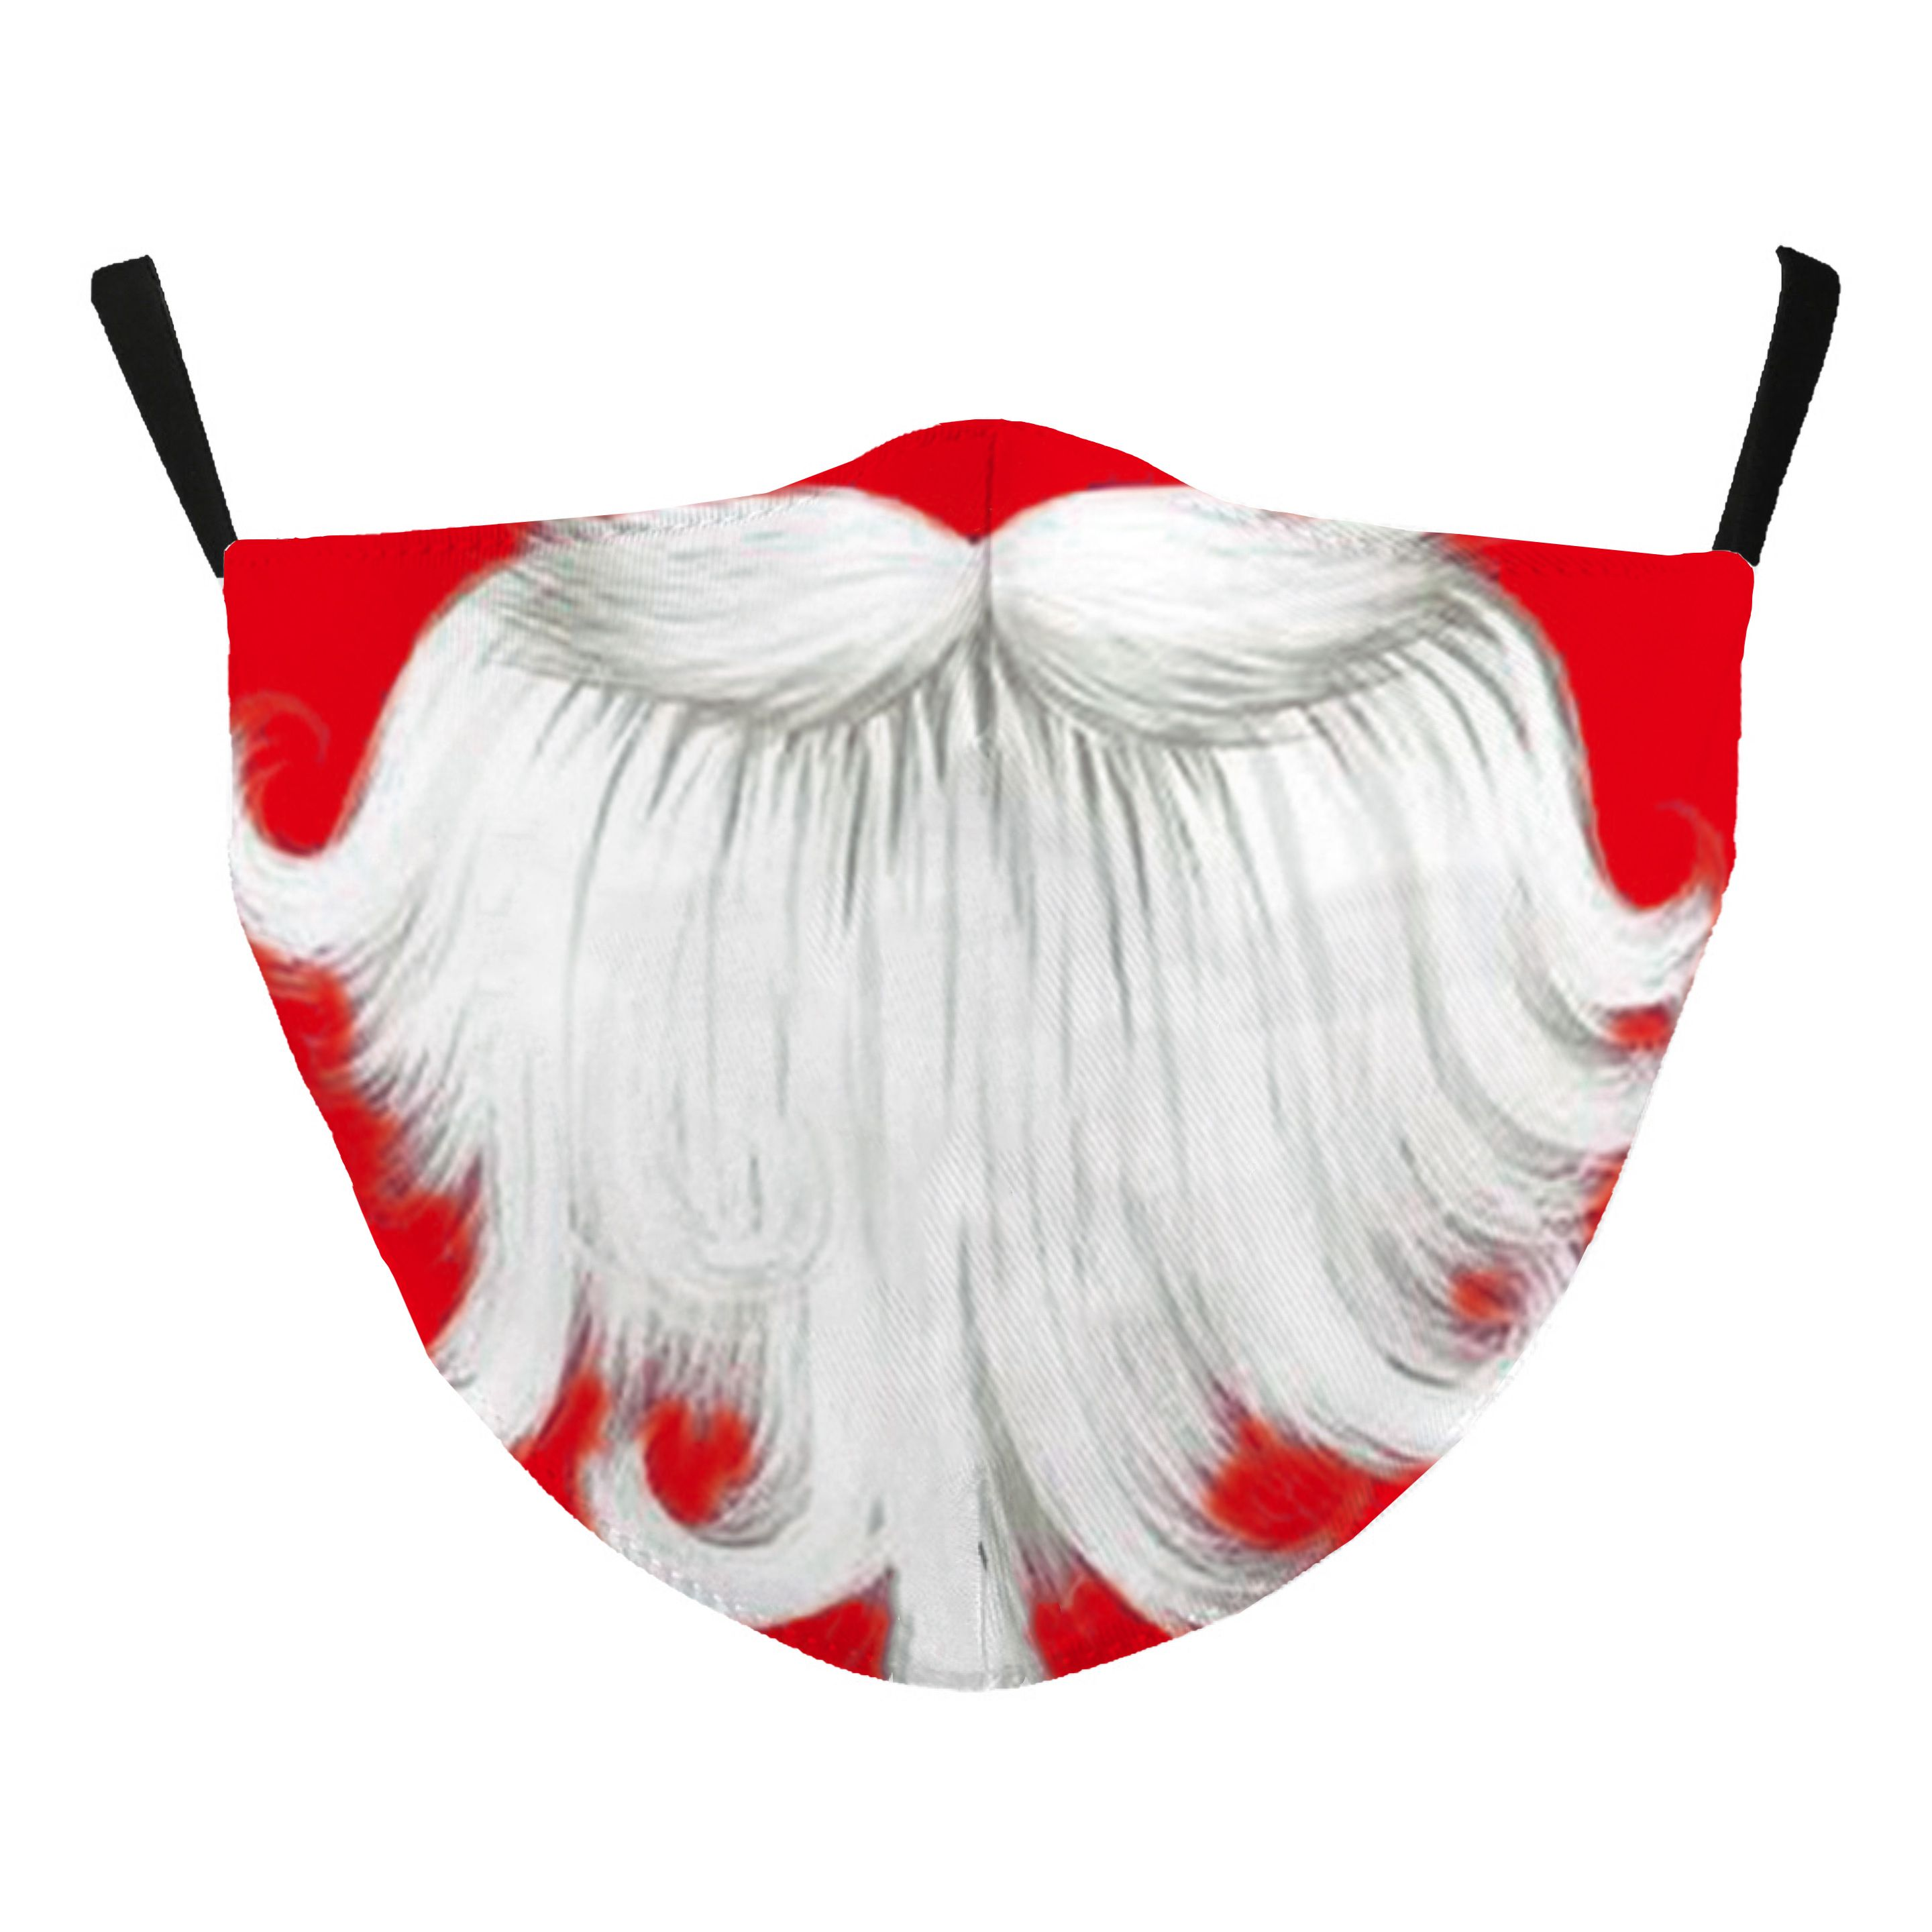 Protective Masks - Christmas / New Years'  - #115-19 Santa Beard - Jessica w/ Filter Pocket - Christmas Theme Masks